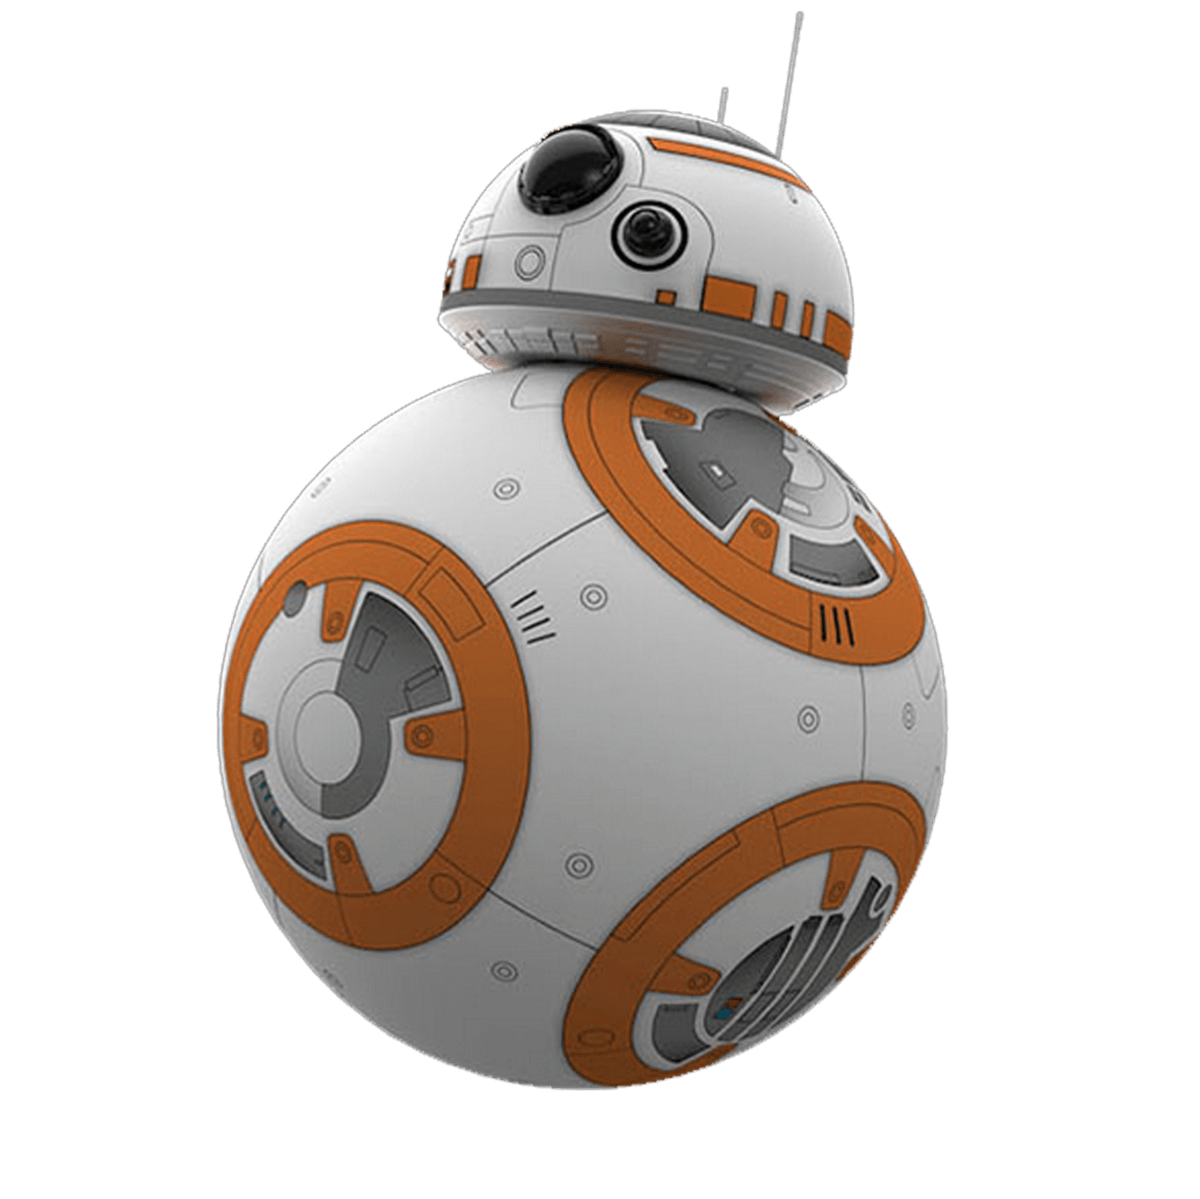 Bb8 Star Wars transparent PNG.